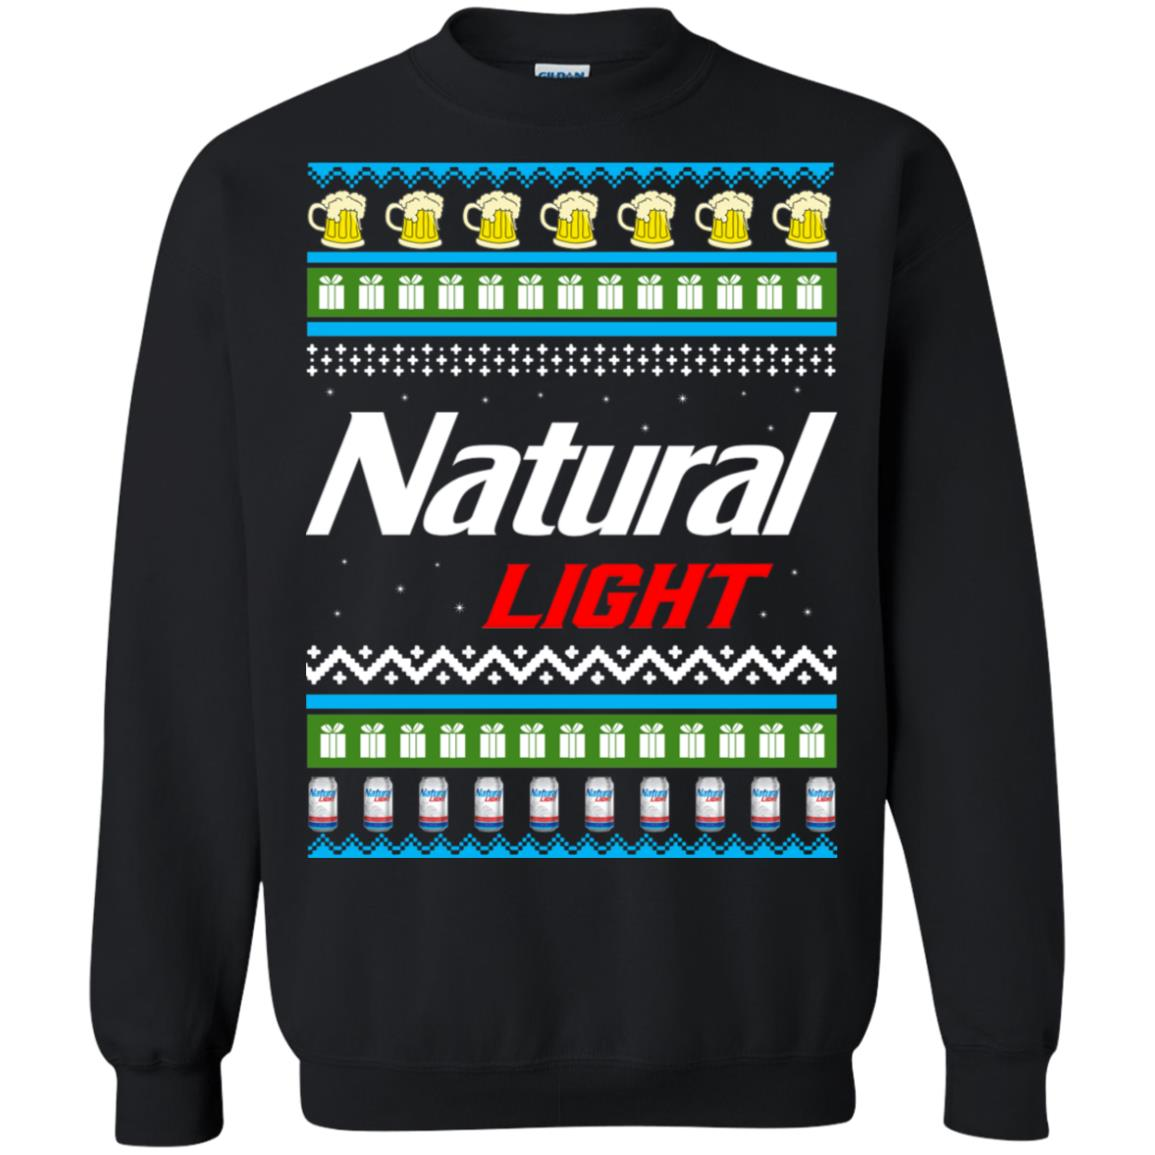 Natural Light Christmas Sweater Long Sleeve Hoodie T Shirt